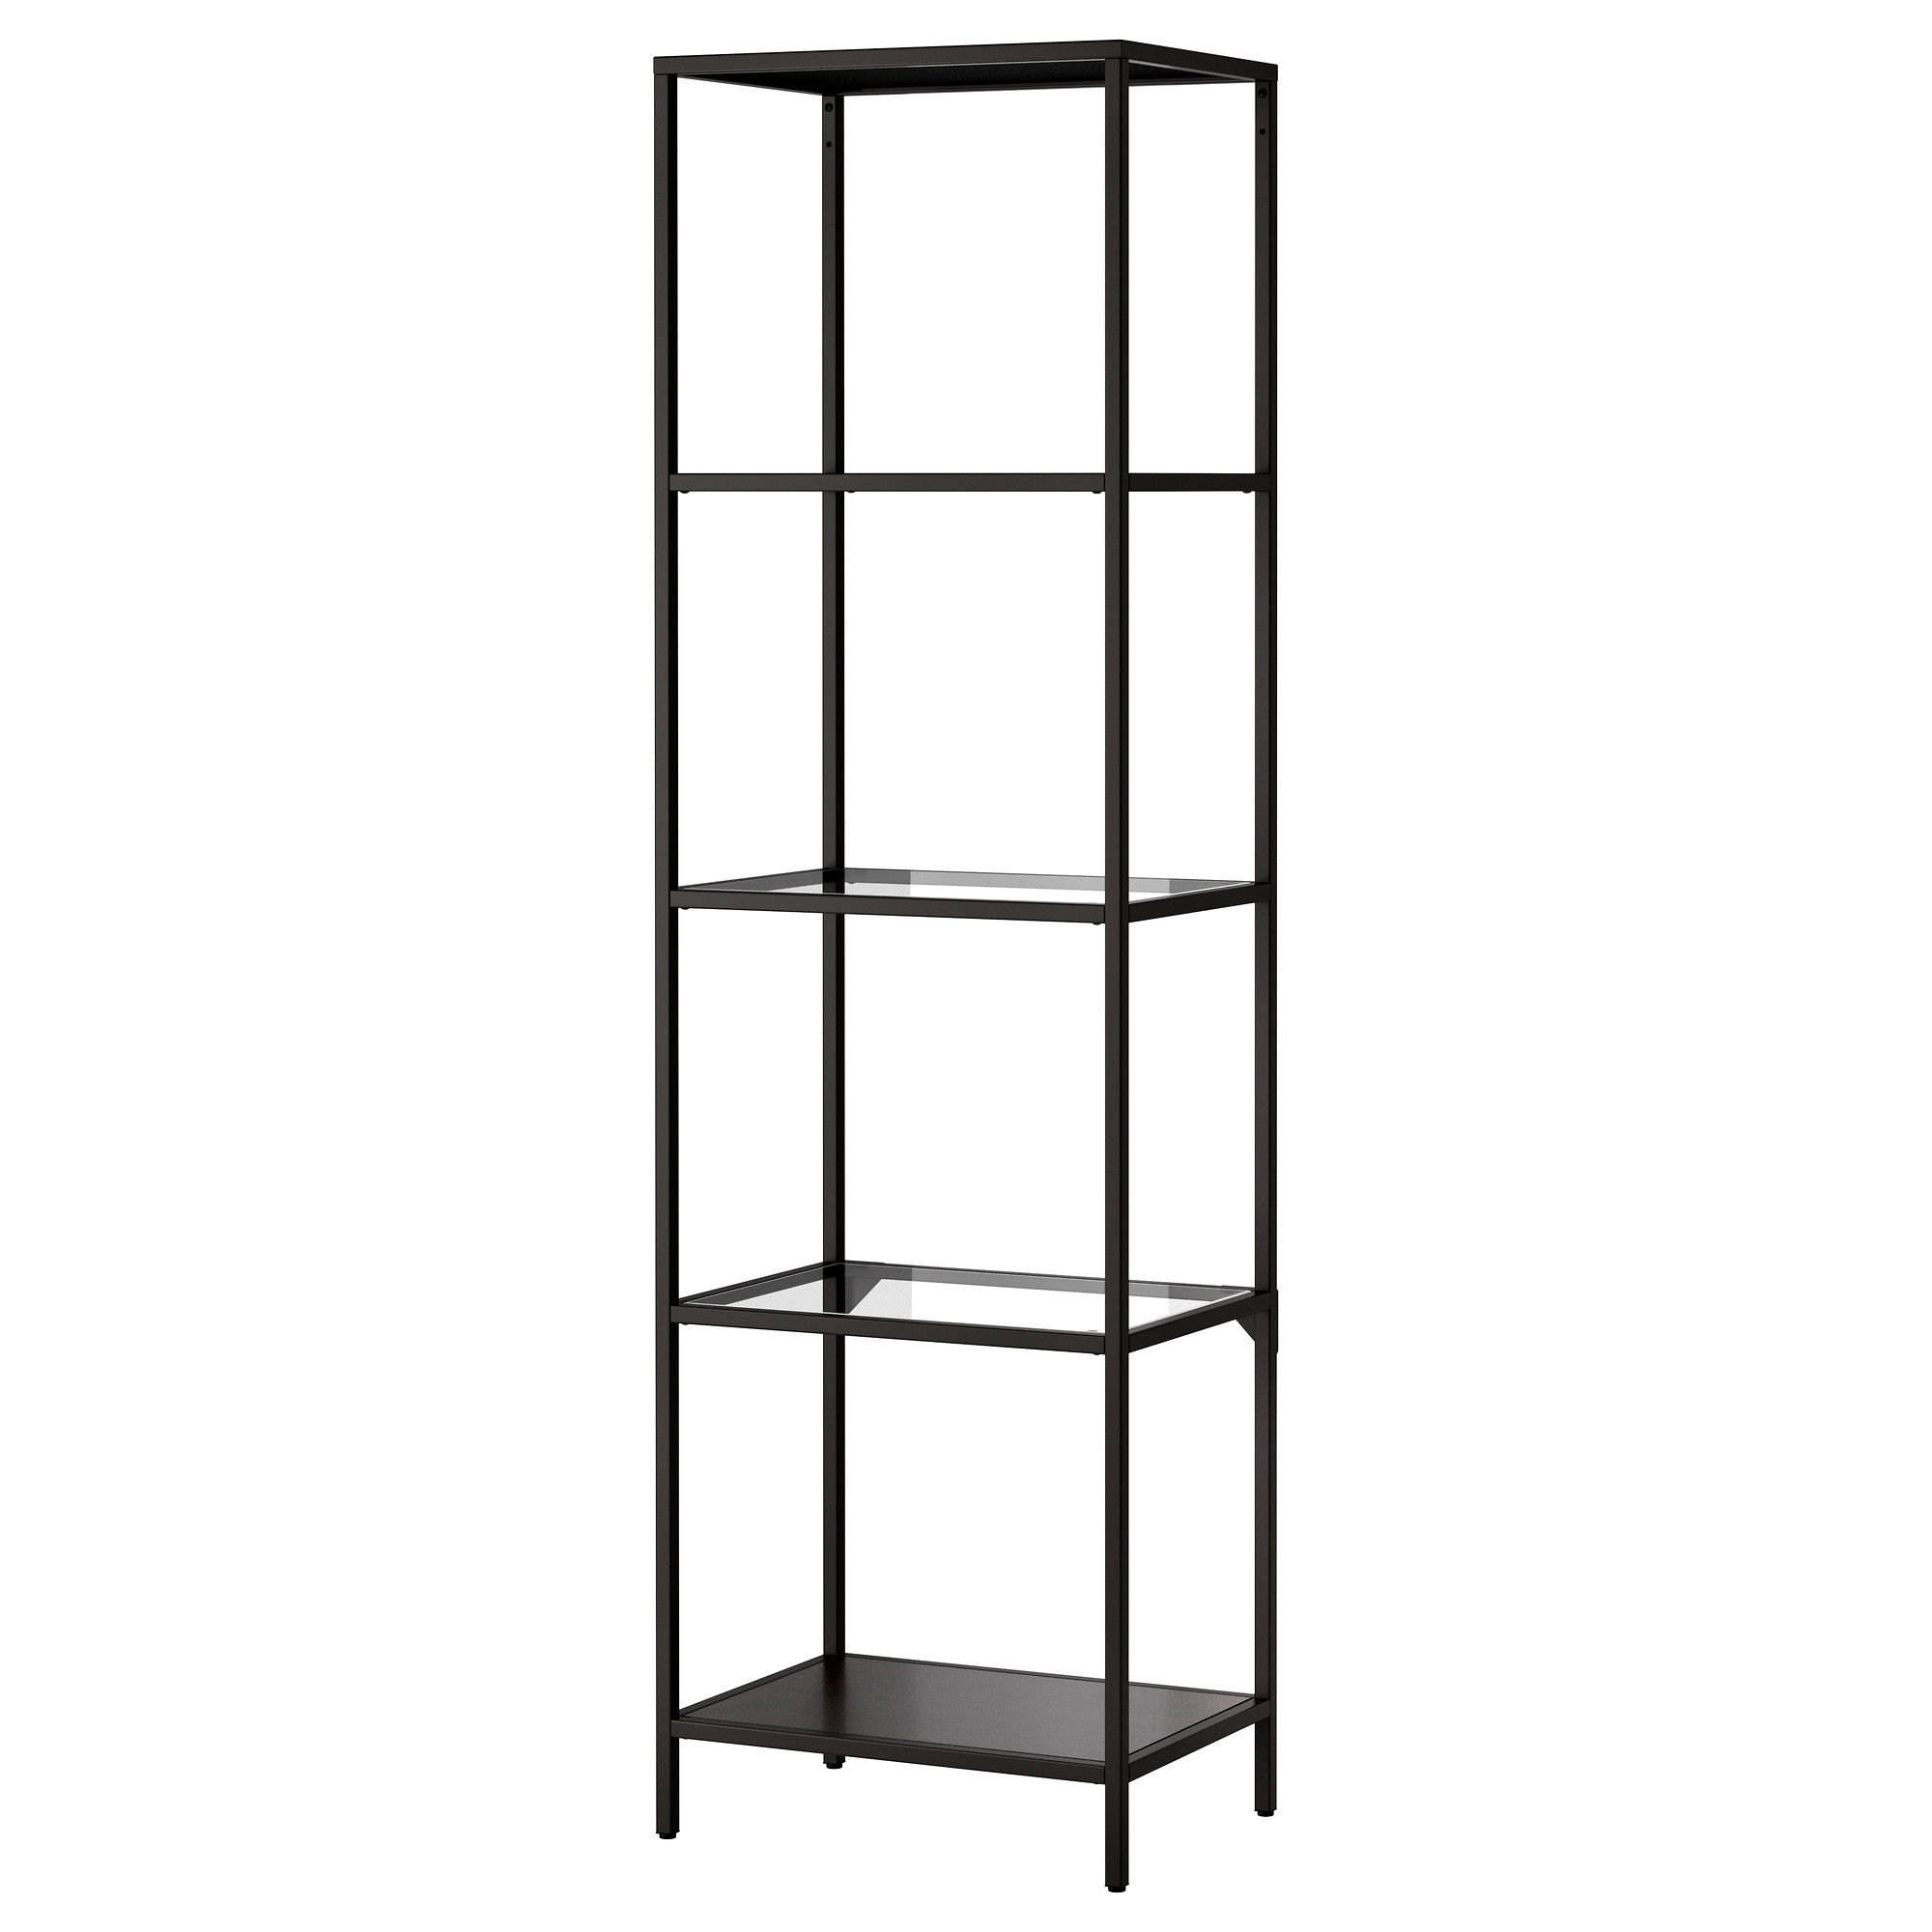 Walmart Floating Shelves | Walmart Shelving | Walmart Stocks